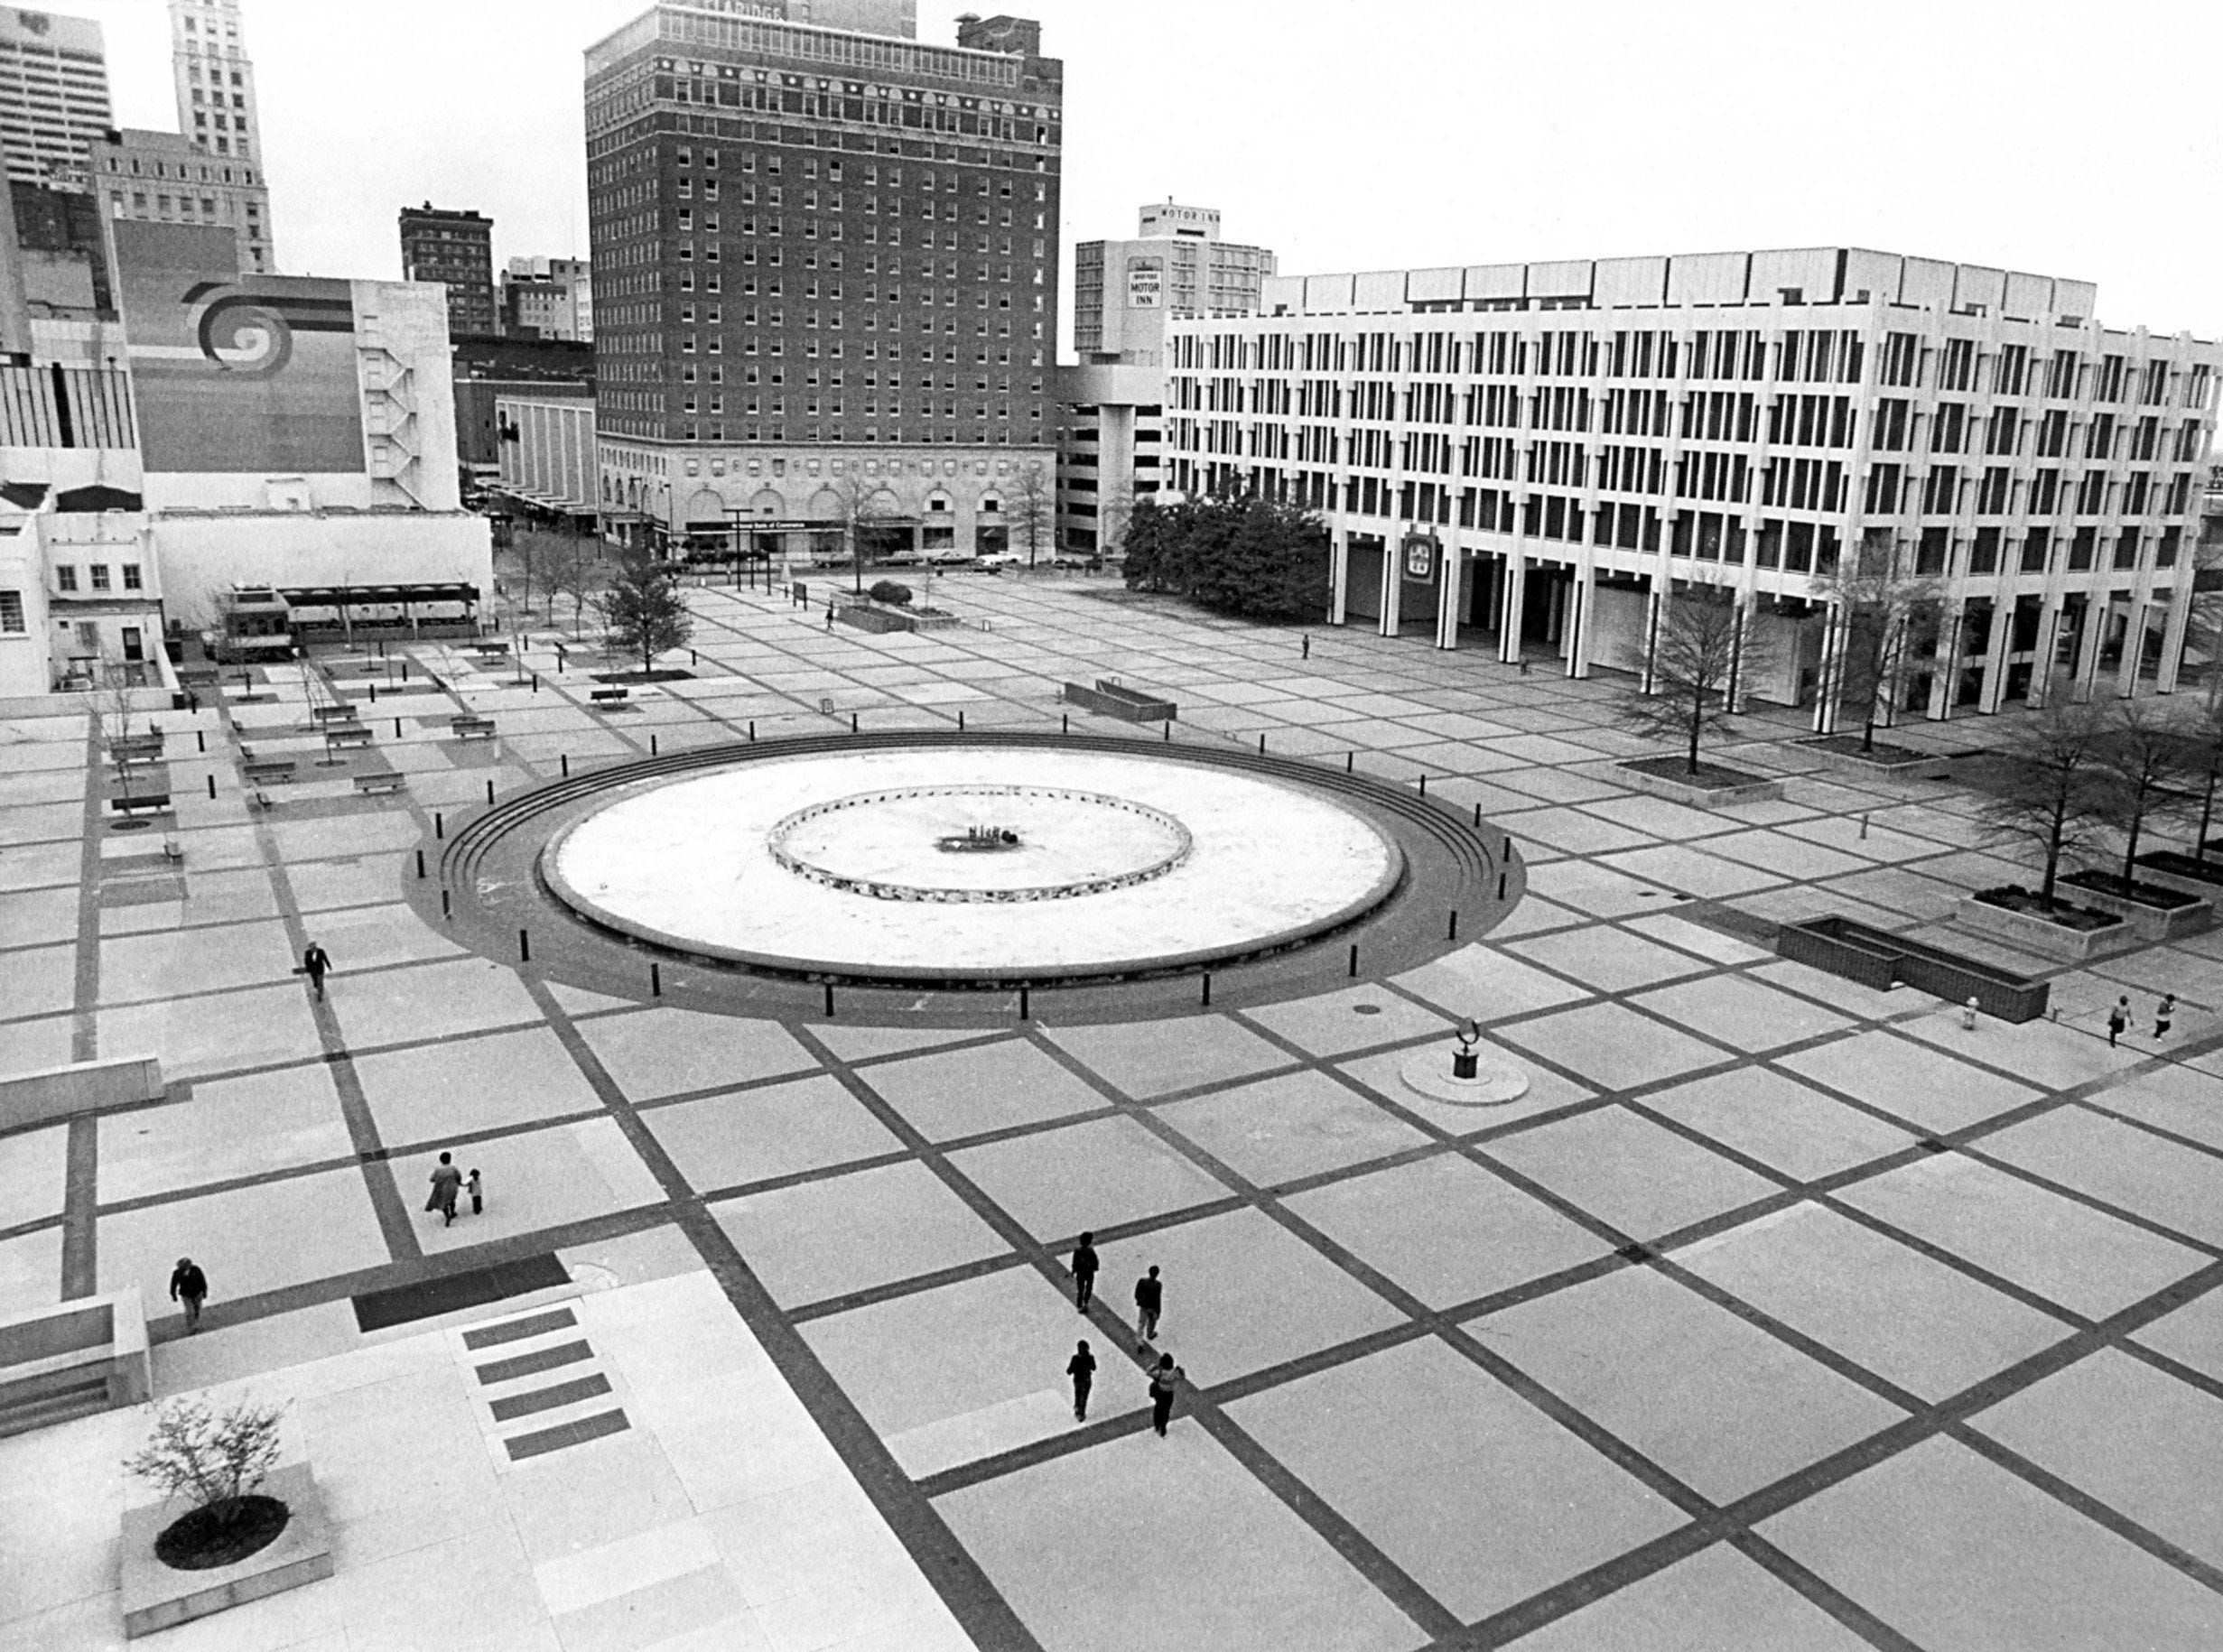 There was a fountain, but no trolley or clock tower when this image was taken of what was called Civic Center Plaza. The photograph was taken from the State of Tennessee Office Building on 25 Mar 1982.